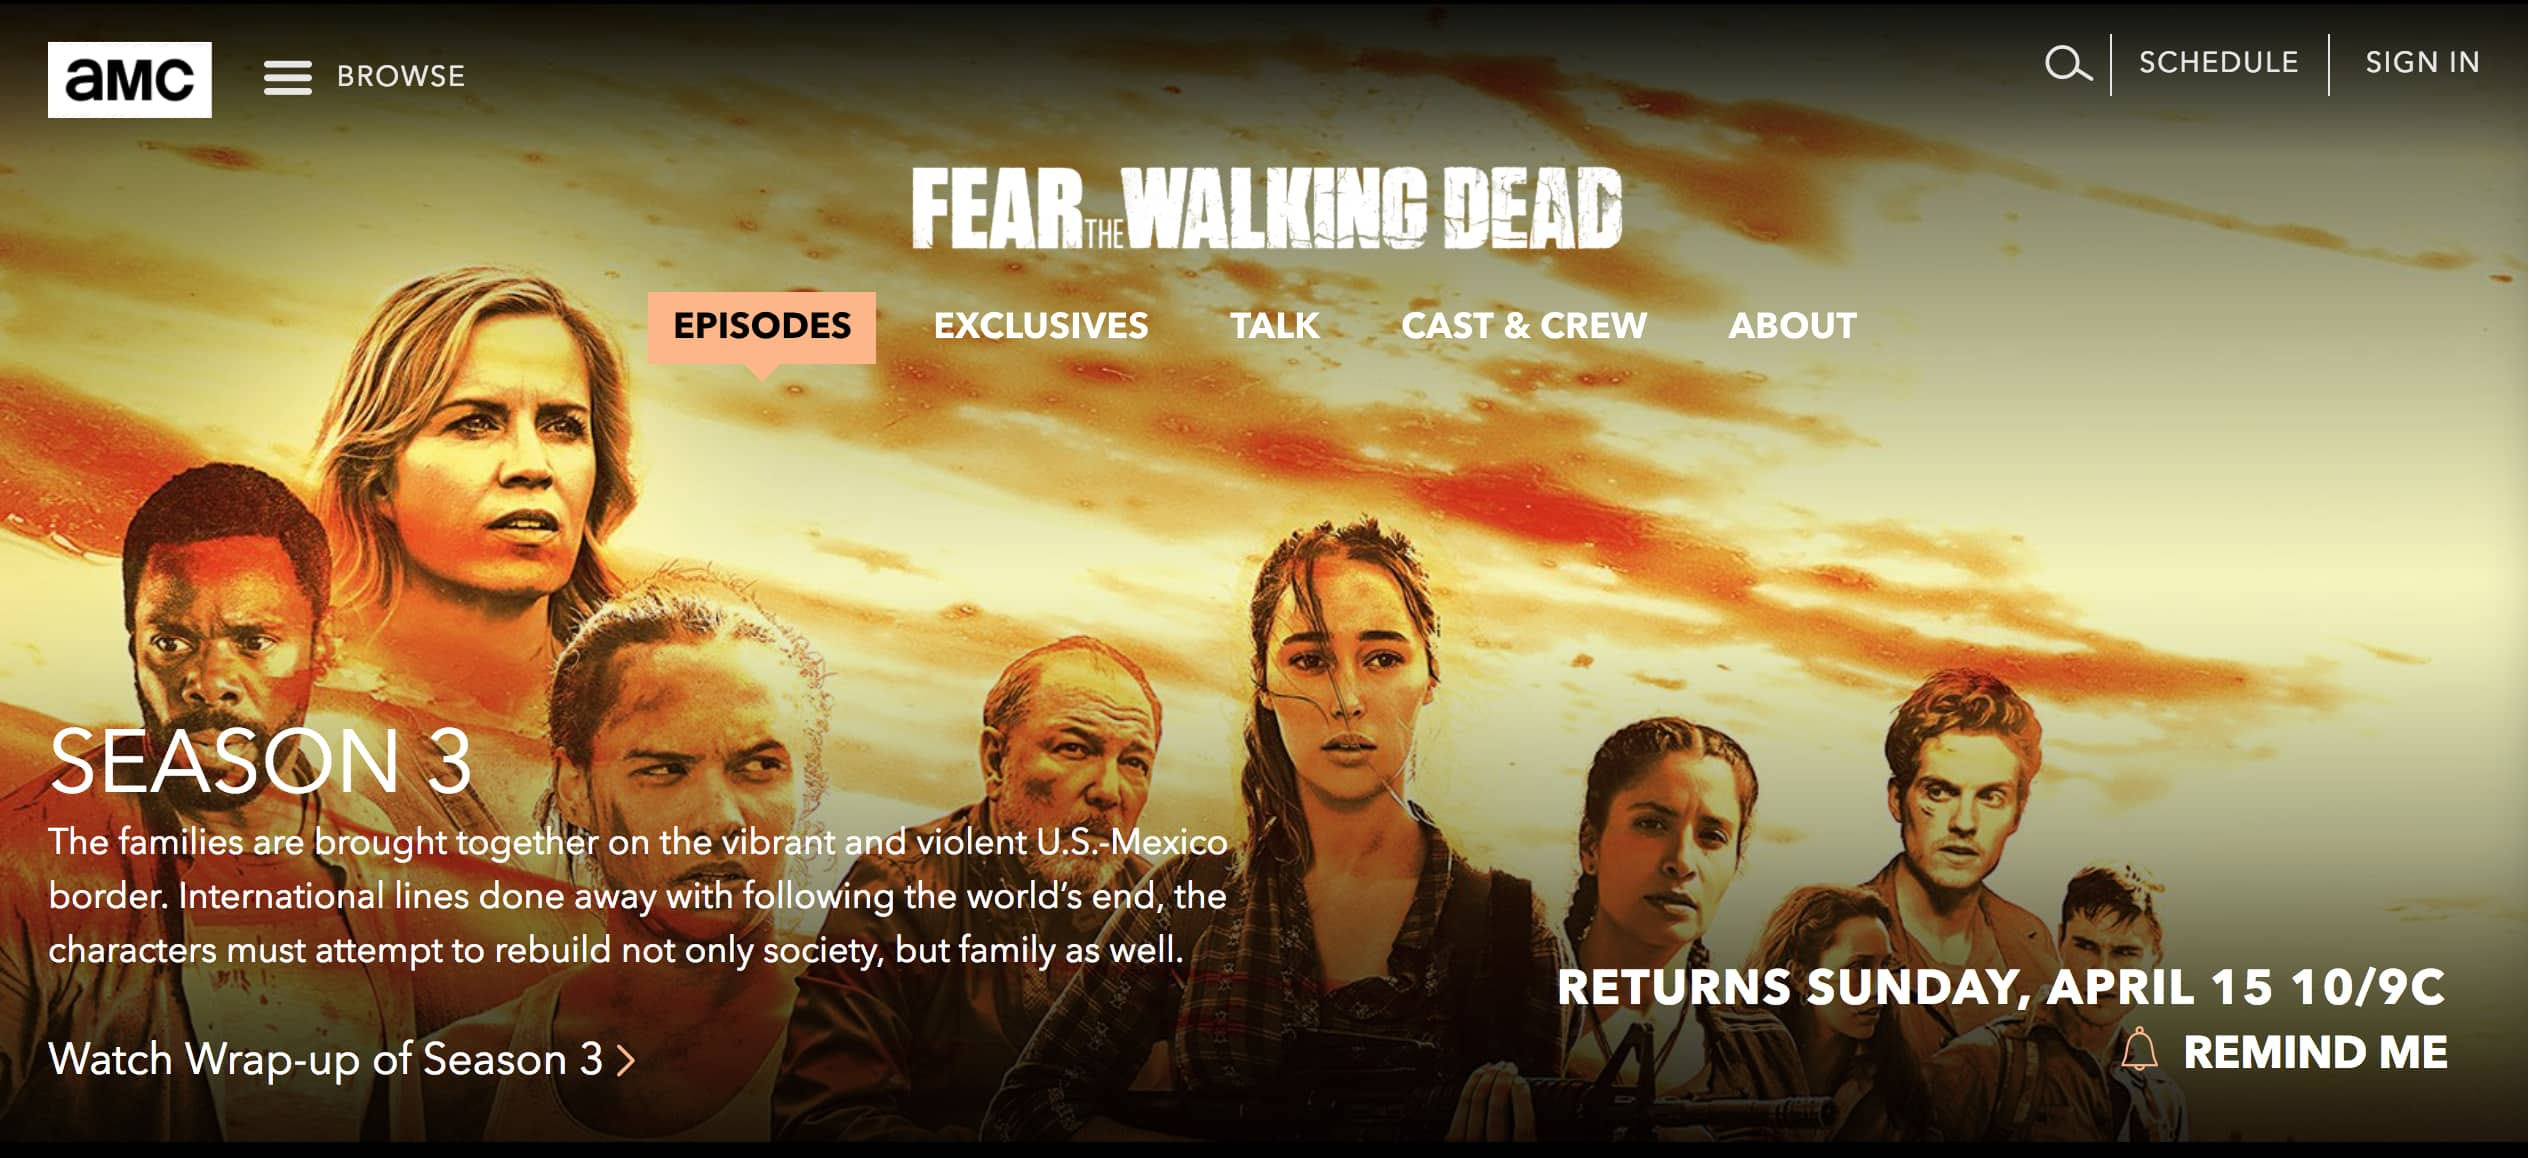 Watch The Walking Dead Online? Free & Paid Streaming Options (2019)